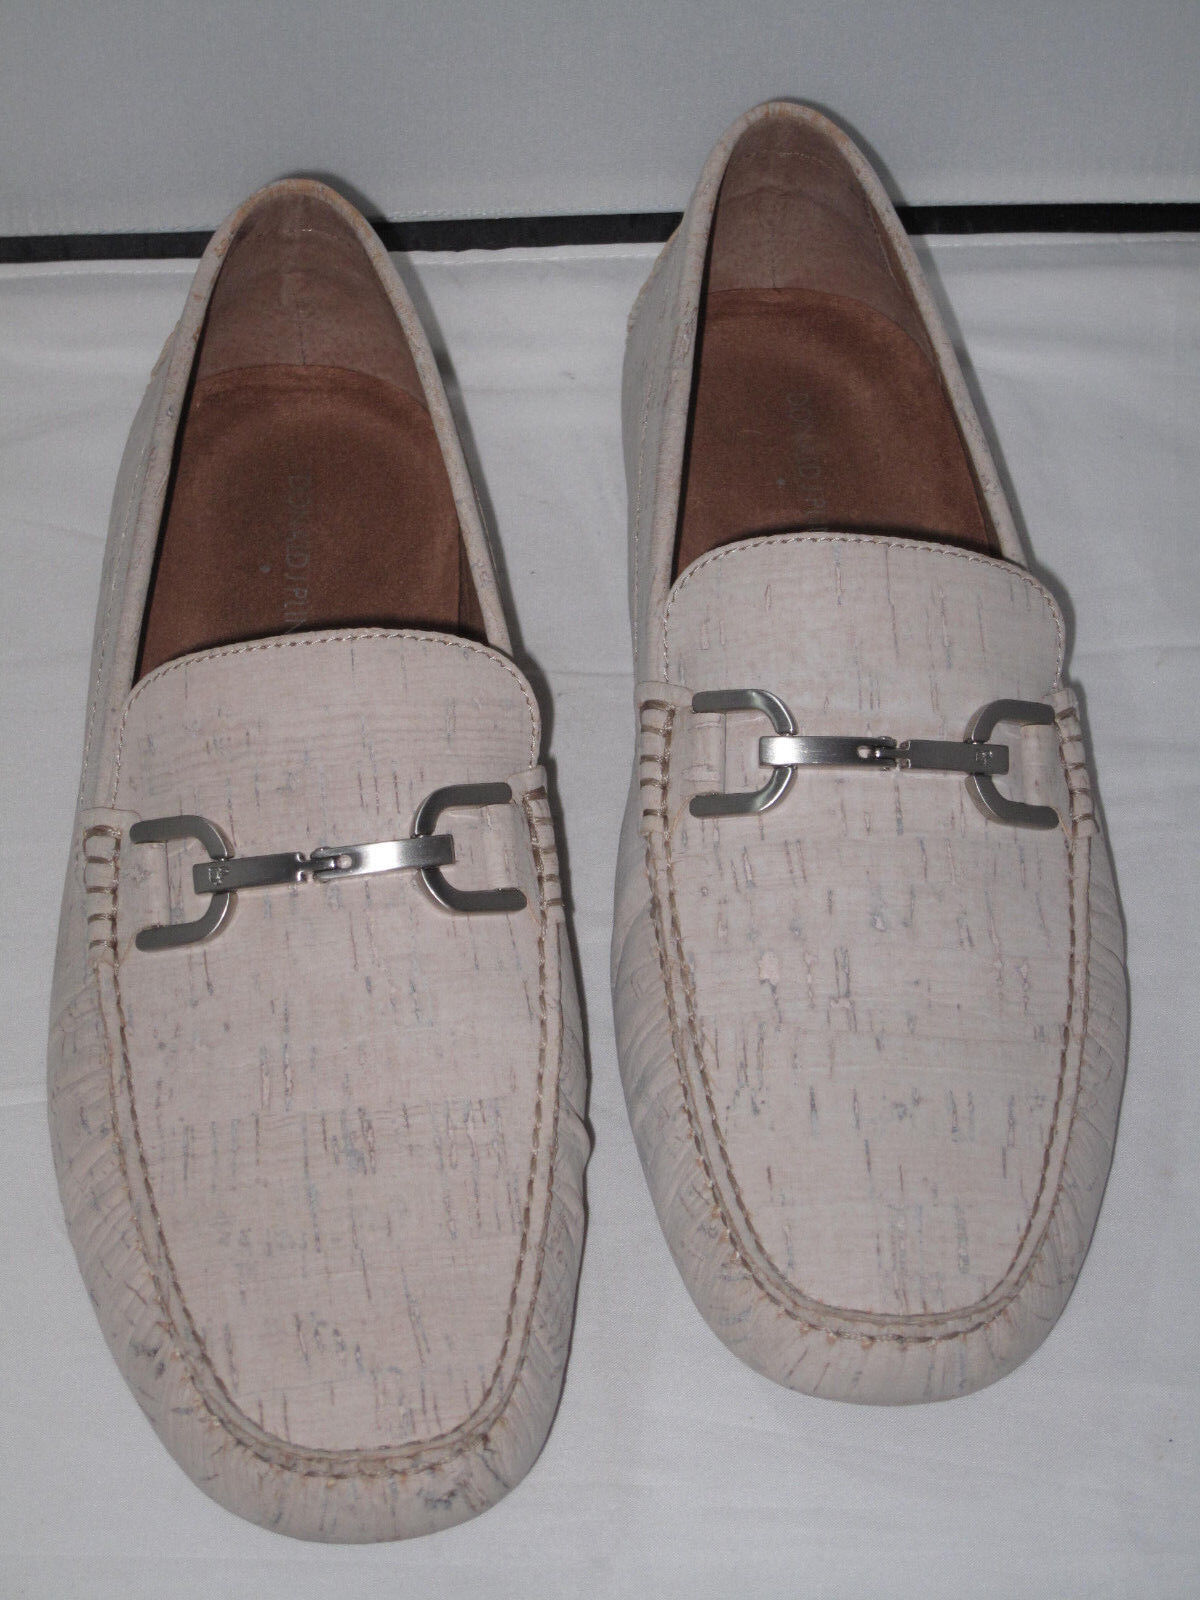 Donald Pliner VIRO2 CW White Cork Driving Mocs  11m new in box